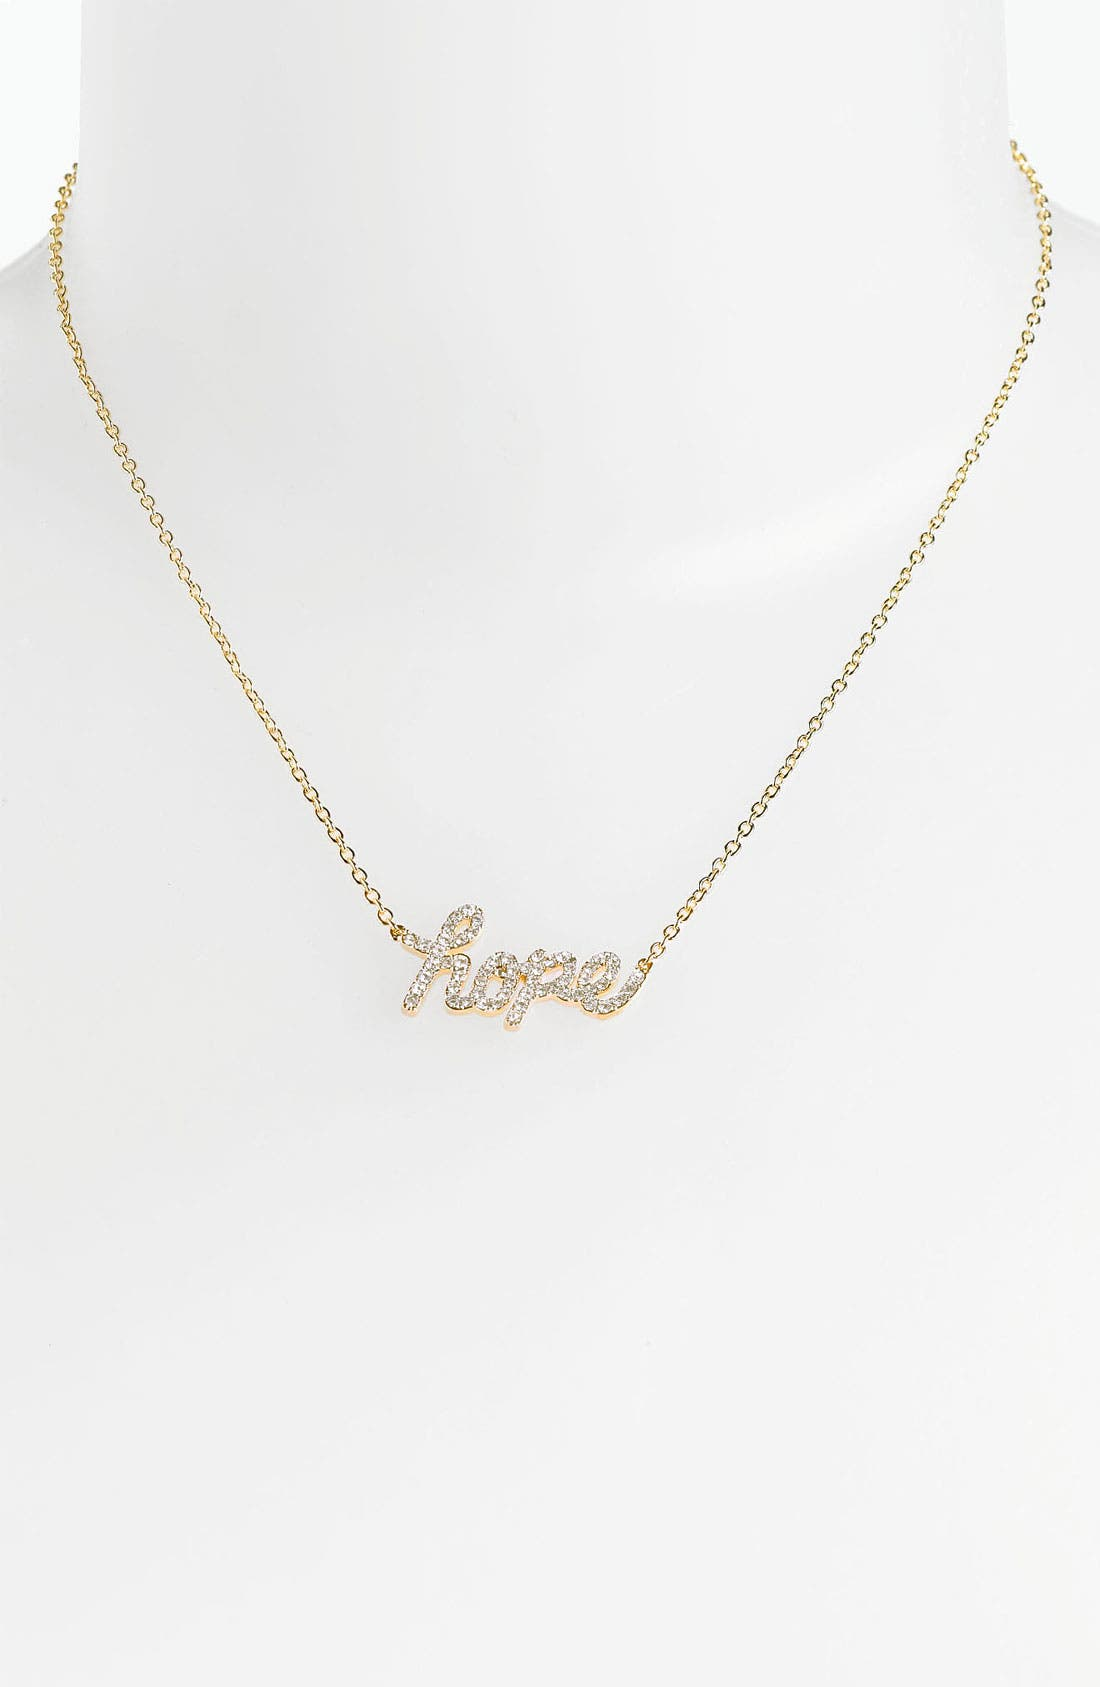 Alternate Image 1 Selected - Ariella Collection 'Messages - Hope' Script Pendant Necklace